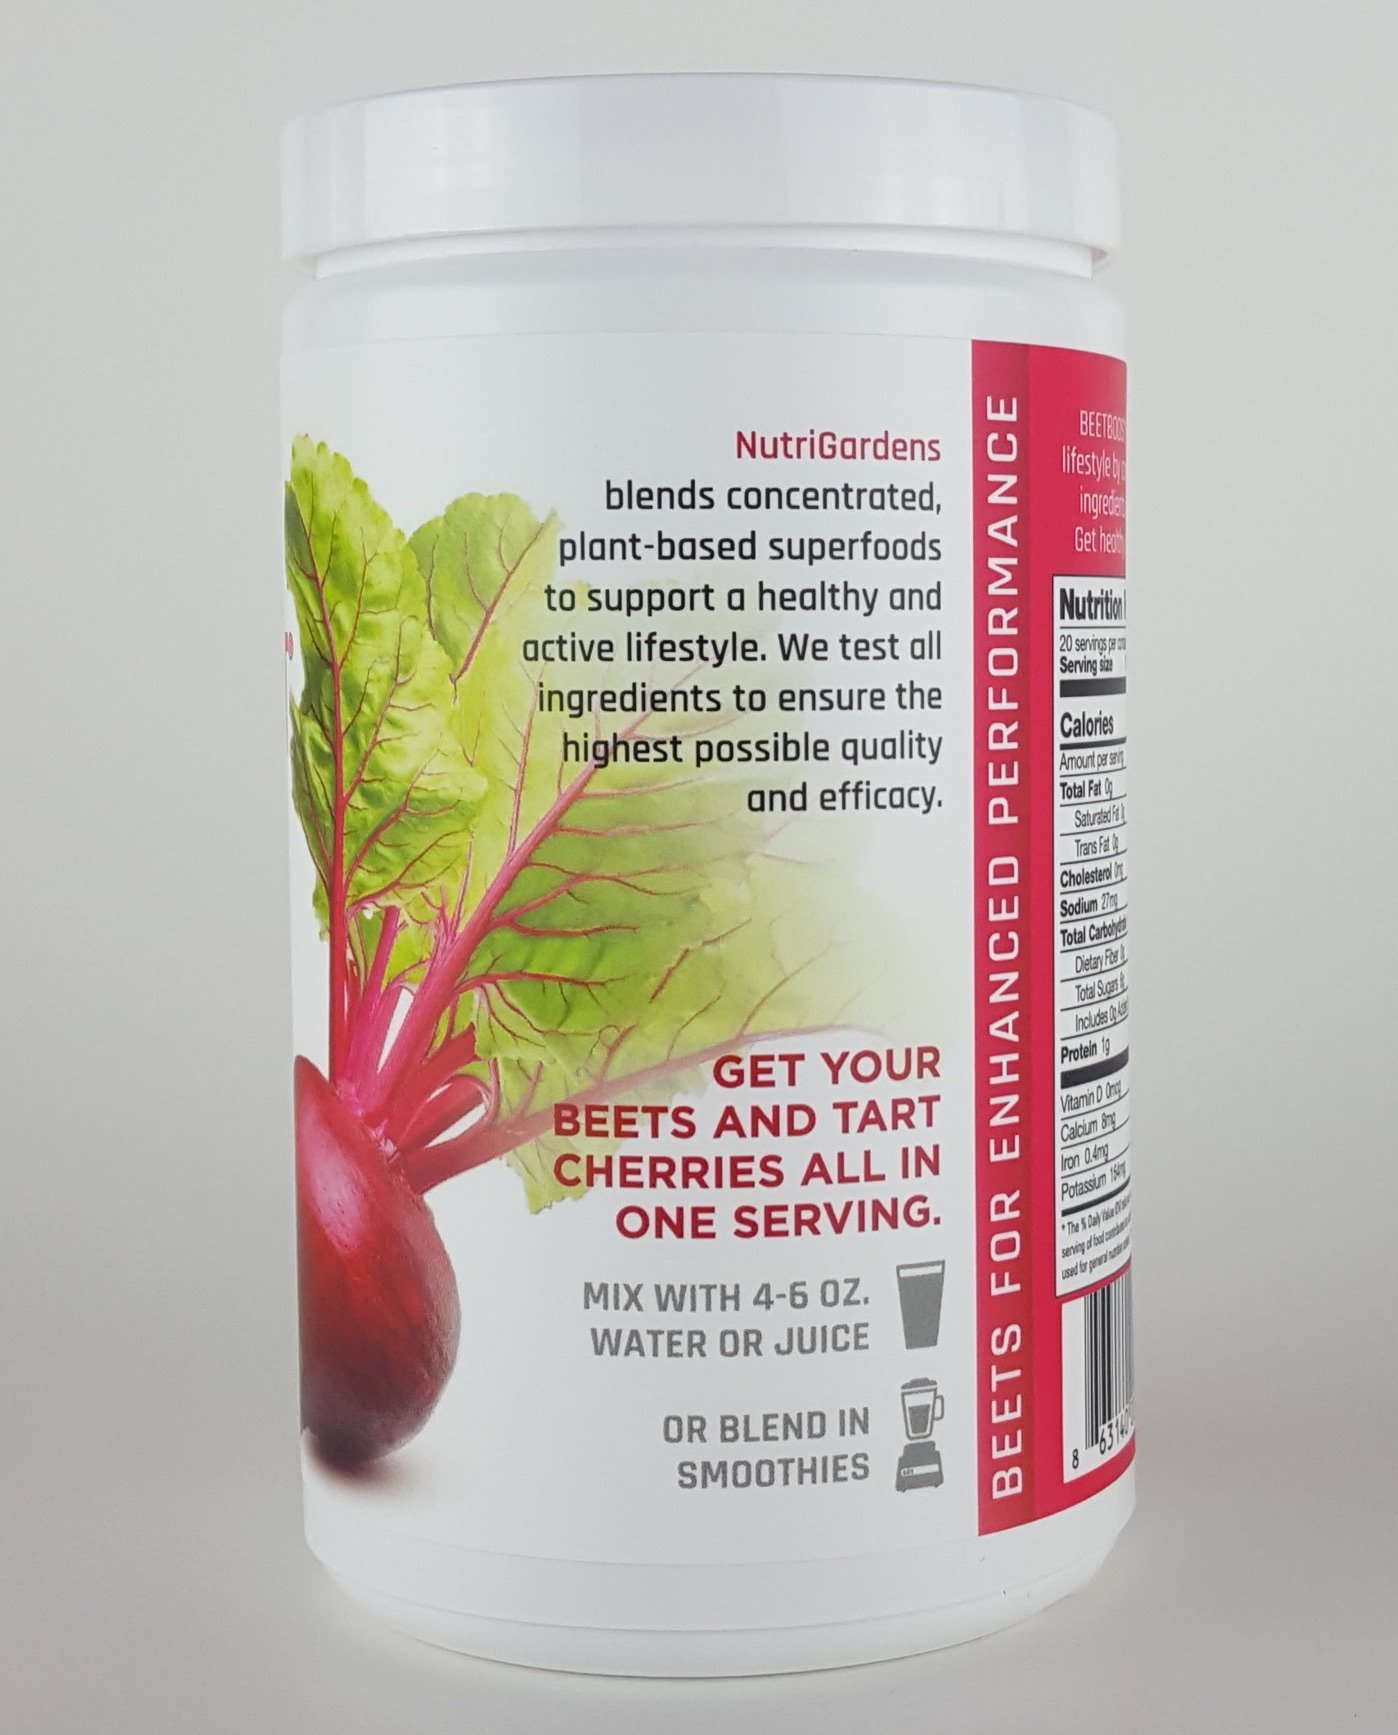 BEET BOOST® for Stamina by NutriGardens - Increase Endurance & Circulation – Concentrated Beets Blended with Tart Cherry for Nitric Oxide BOOST - Reduce Inflammation in Joints & Muscles (7 ounces jar) by Beet Boost (Image #3)